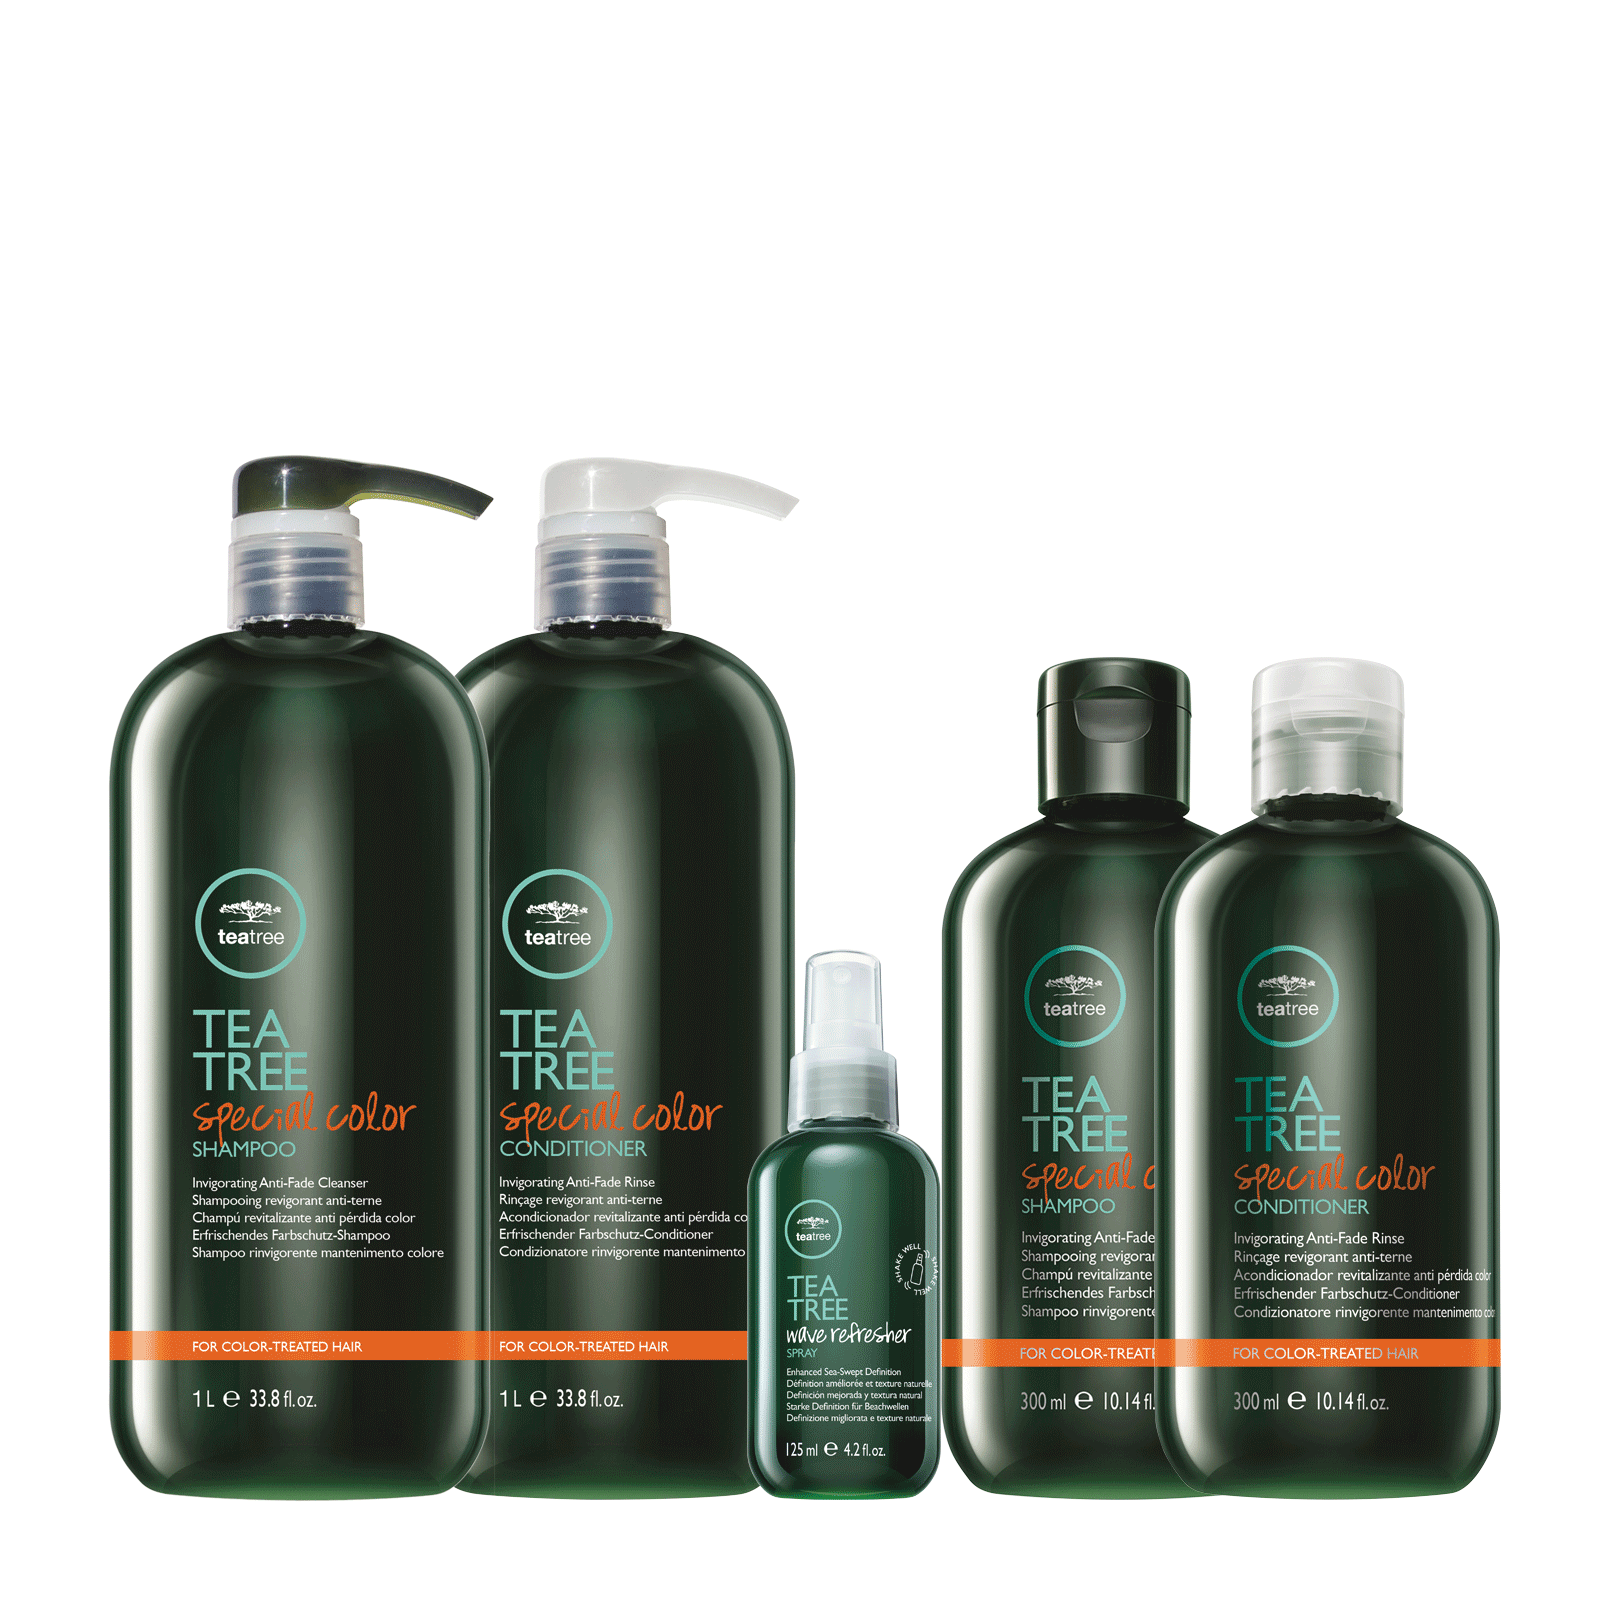 Paul Mitchell Tea Tree Special Color Shampoo, Conditioner 33.8 Liter Duo